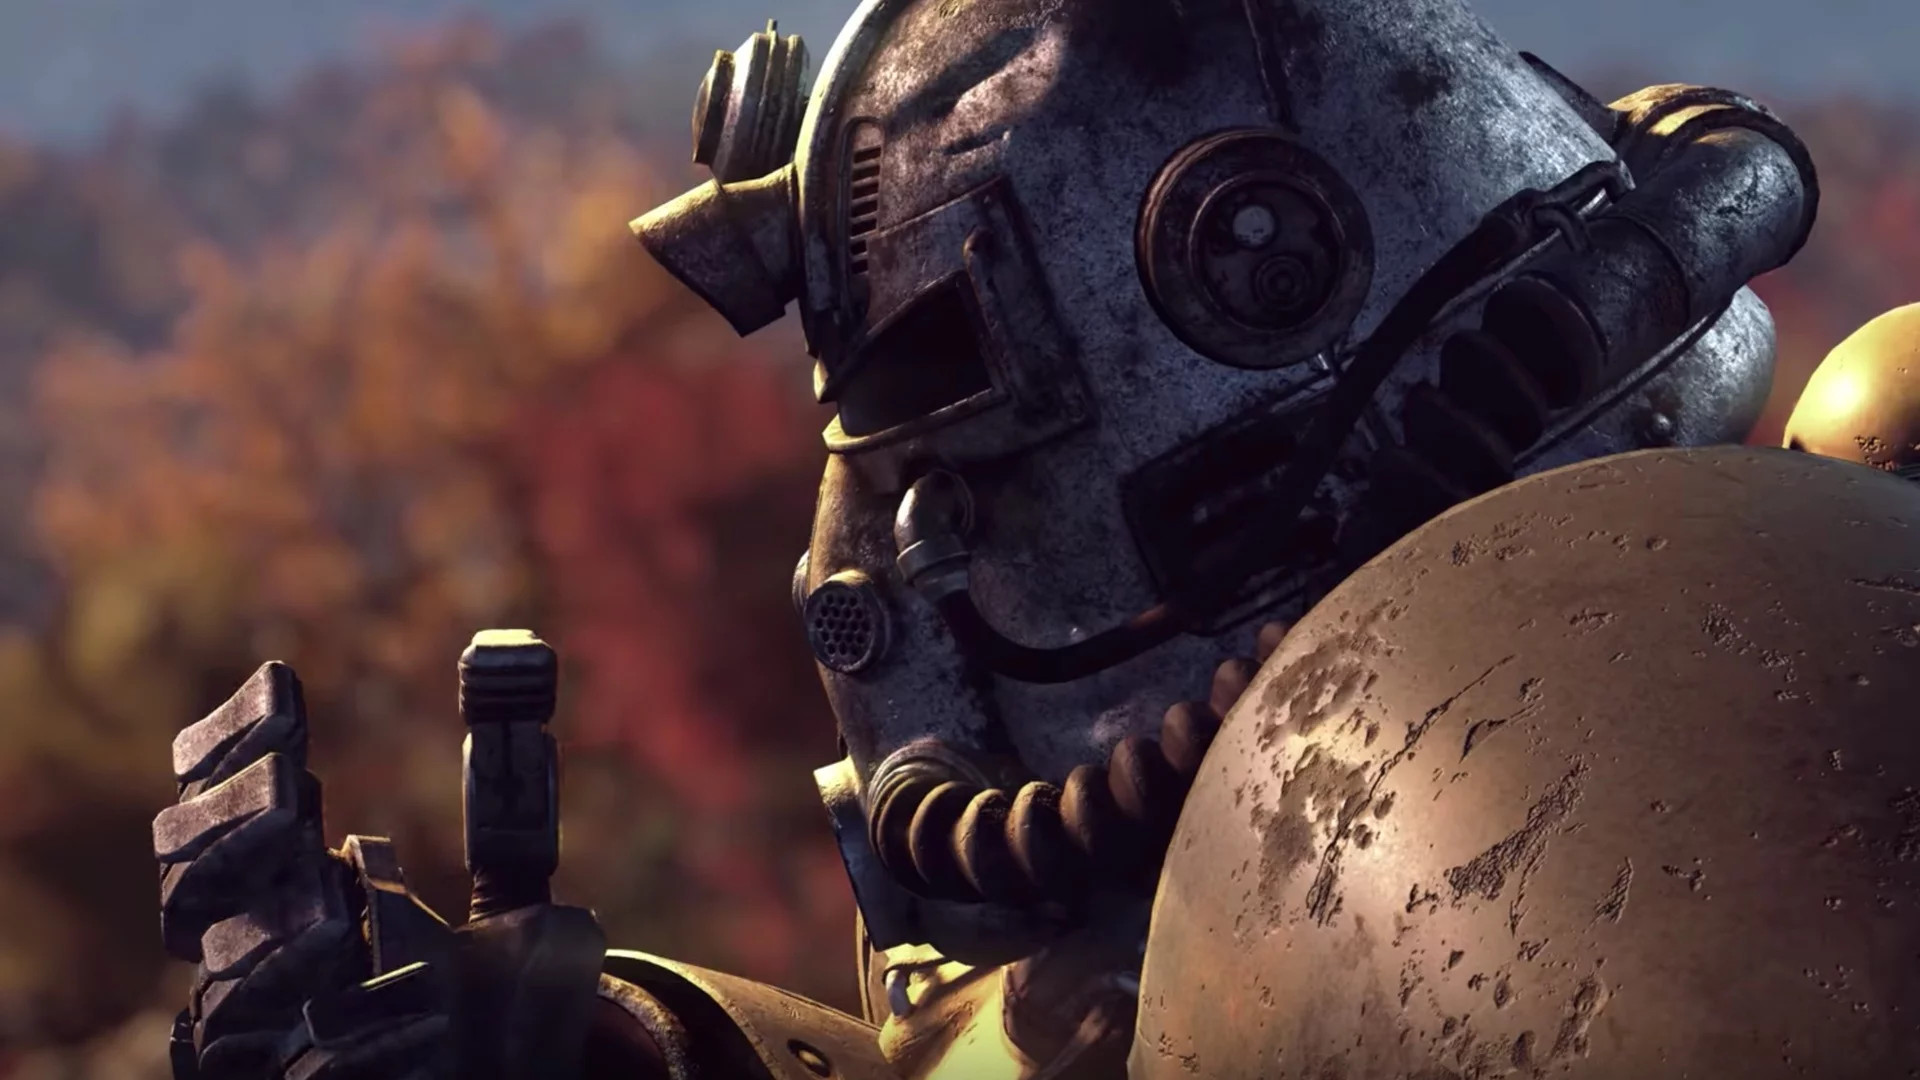 Fallout 76 update: Latest patch notes | PC Gamer